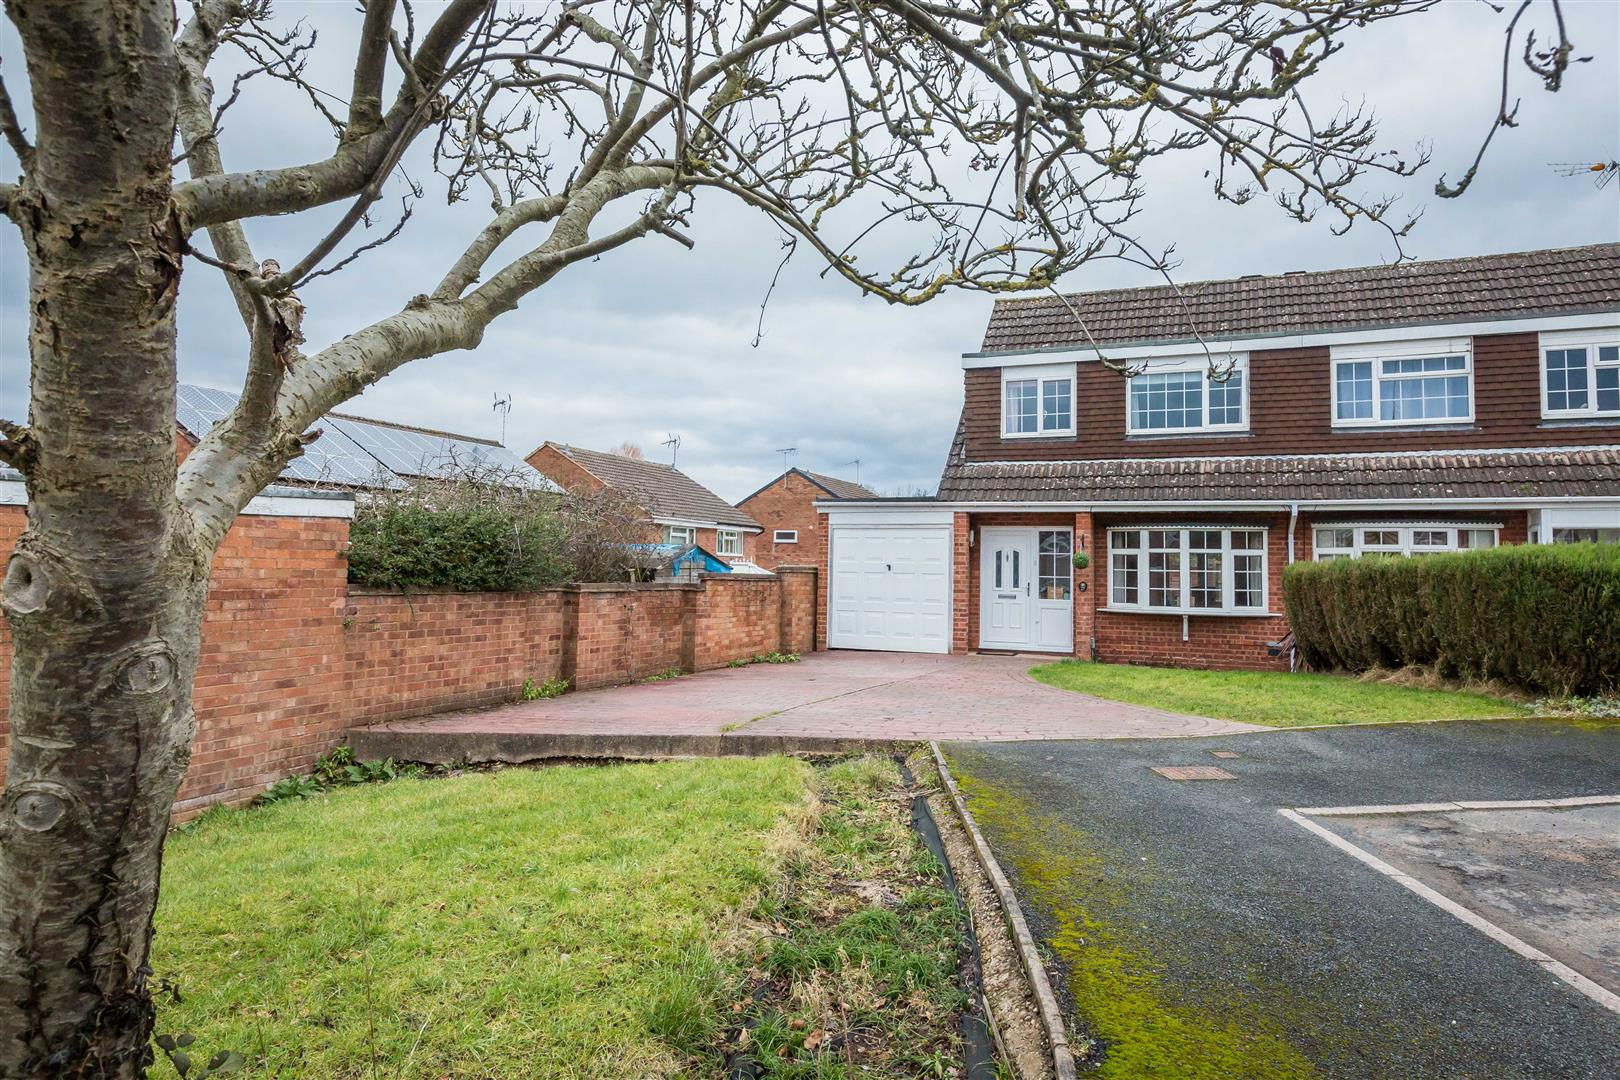 3 Bedrooms Semi Detached House for sale in Granby Close, Winyates East, Redditch